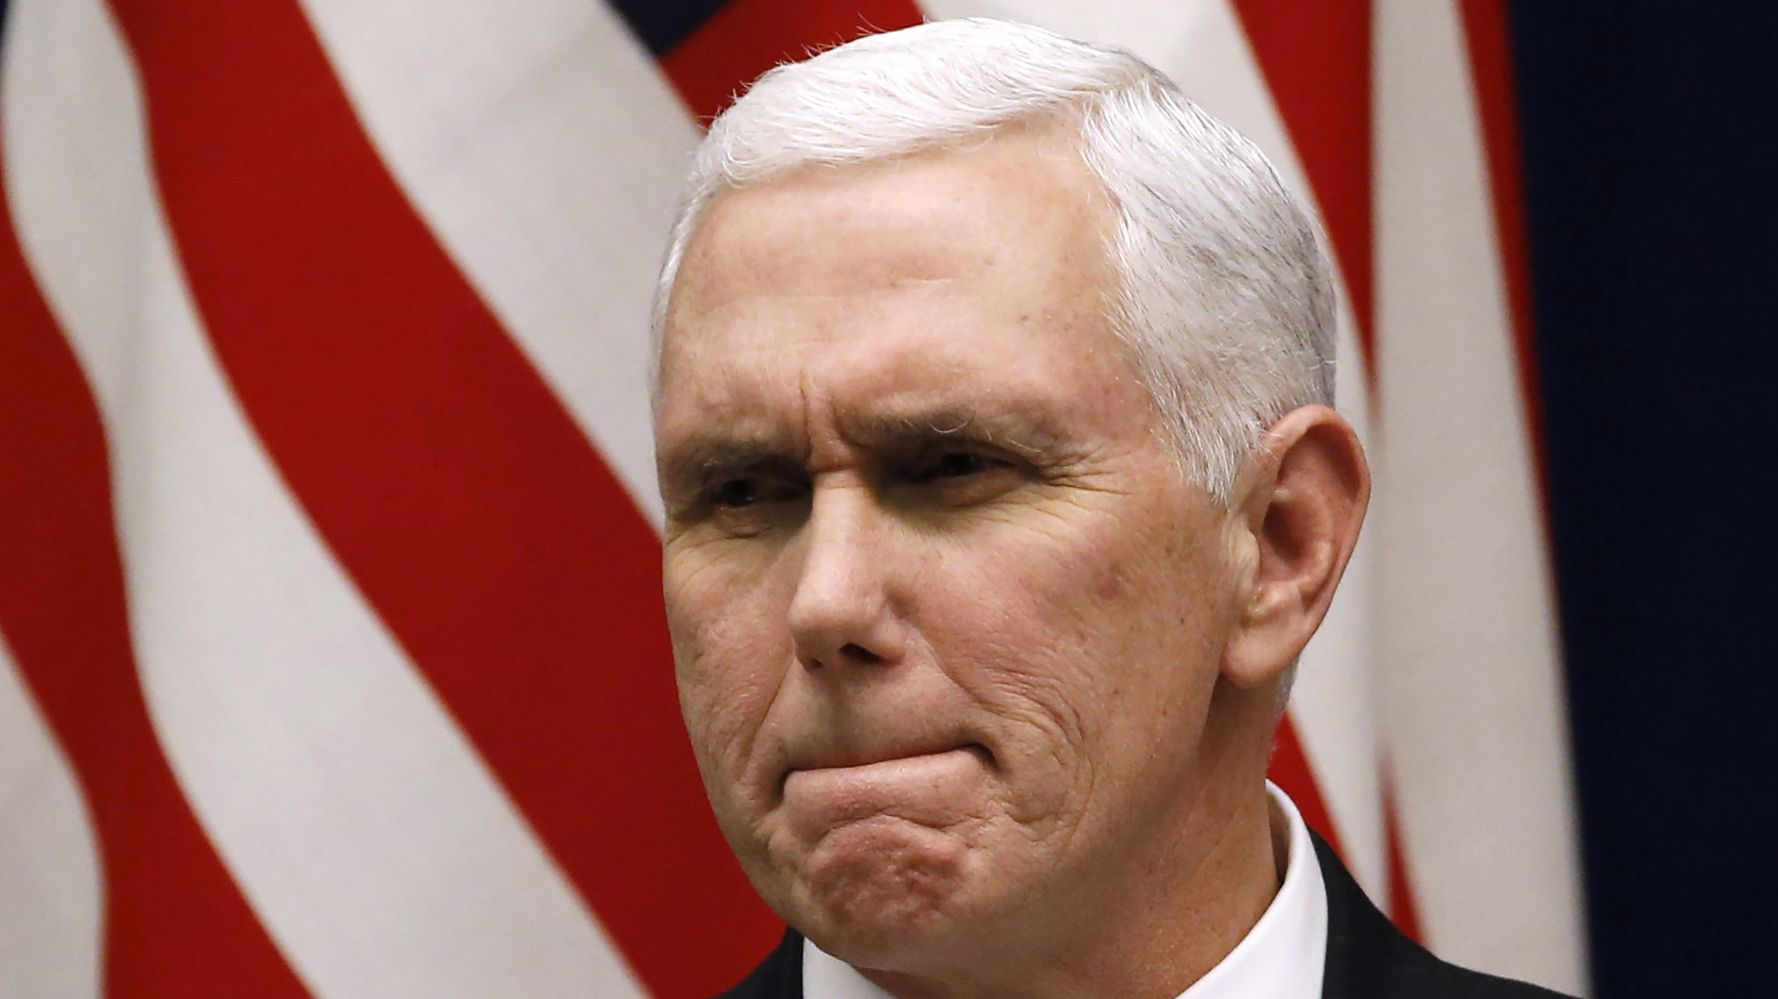 Westlake Legal Group 5a7c031a2000004d00eae34e Irish Media Dumps On Pence: He Came As A Guest And 'Sh*t On The New Carpet'